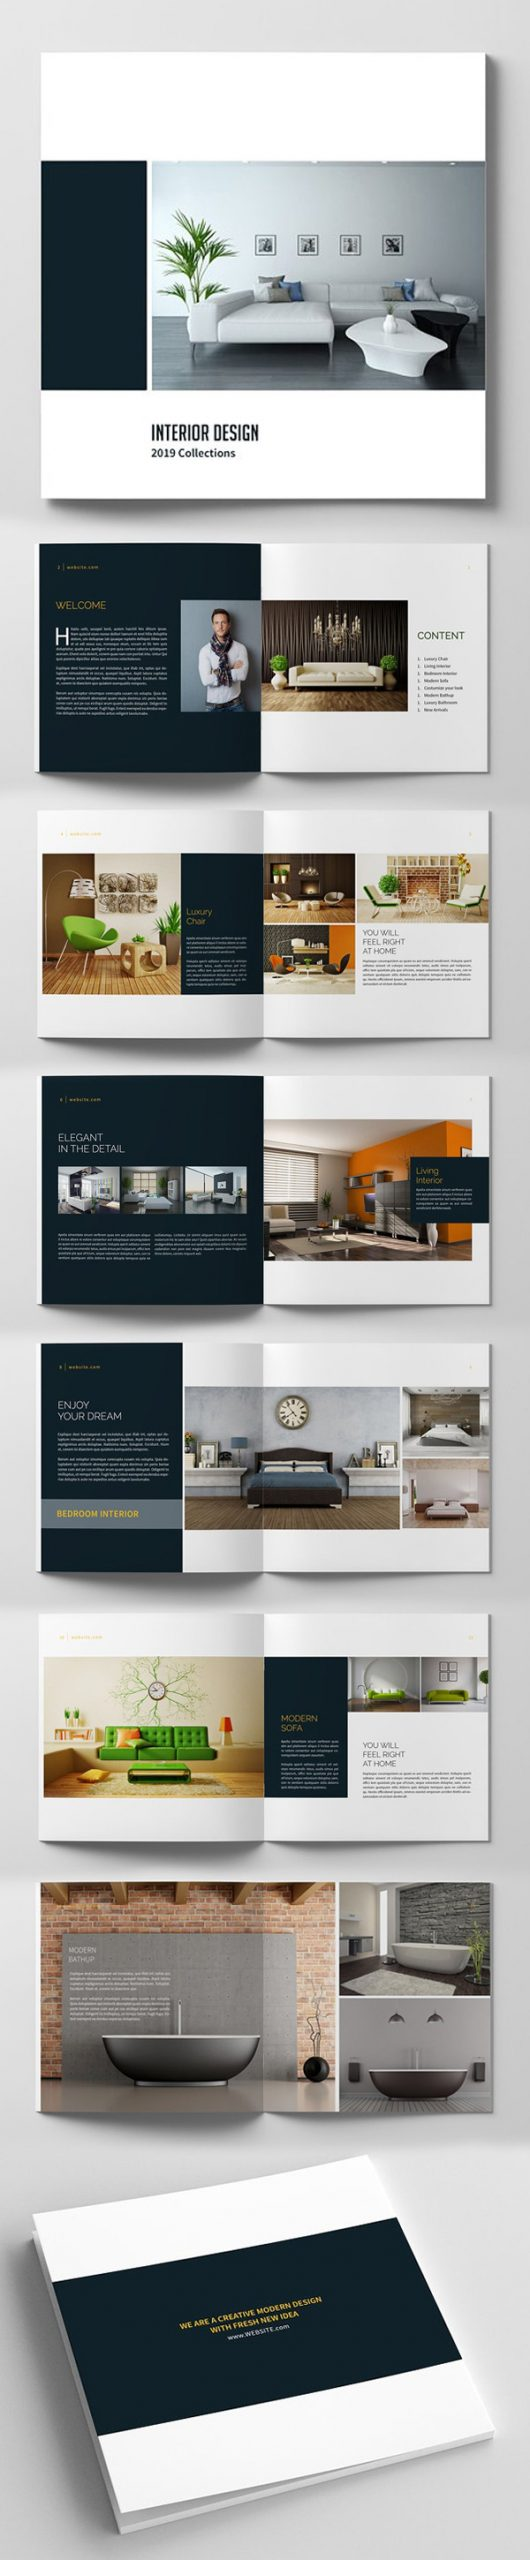 Room Design Template Grid